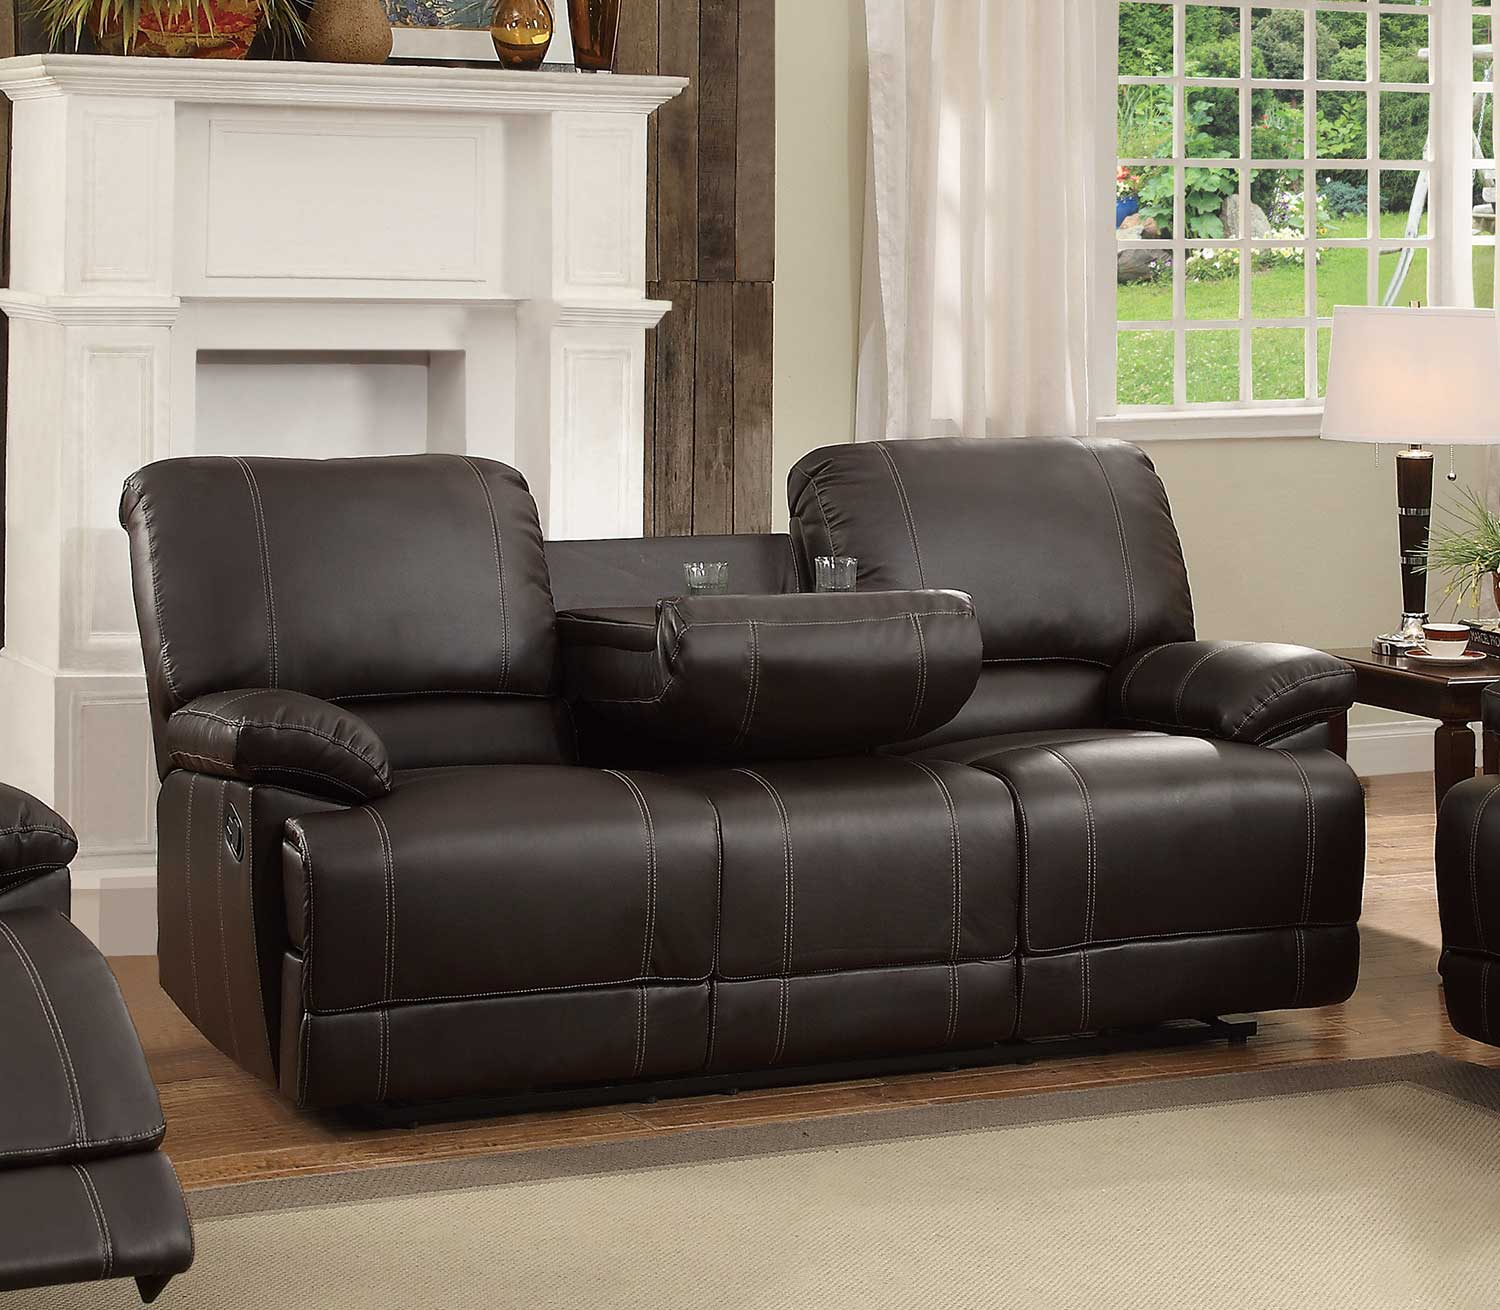 Homelegance Cassville Double Reclining Sofa With Center Drop Down Cup  Holders   Dark Brown